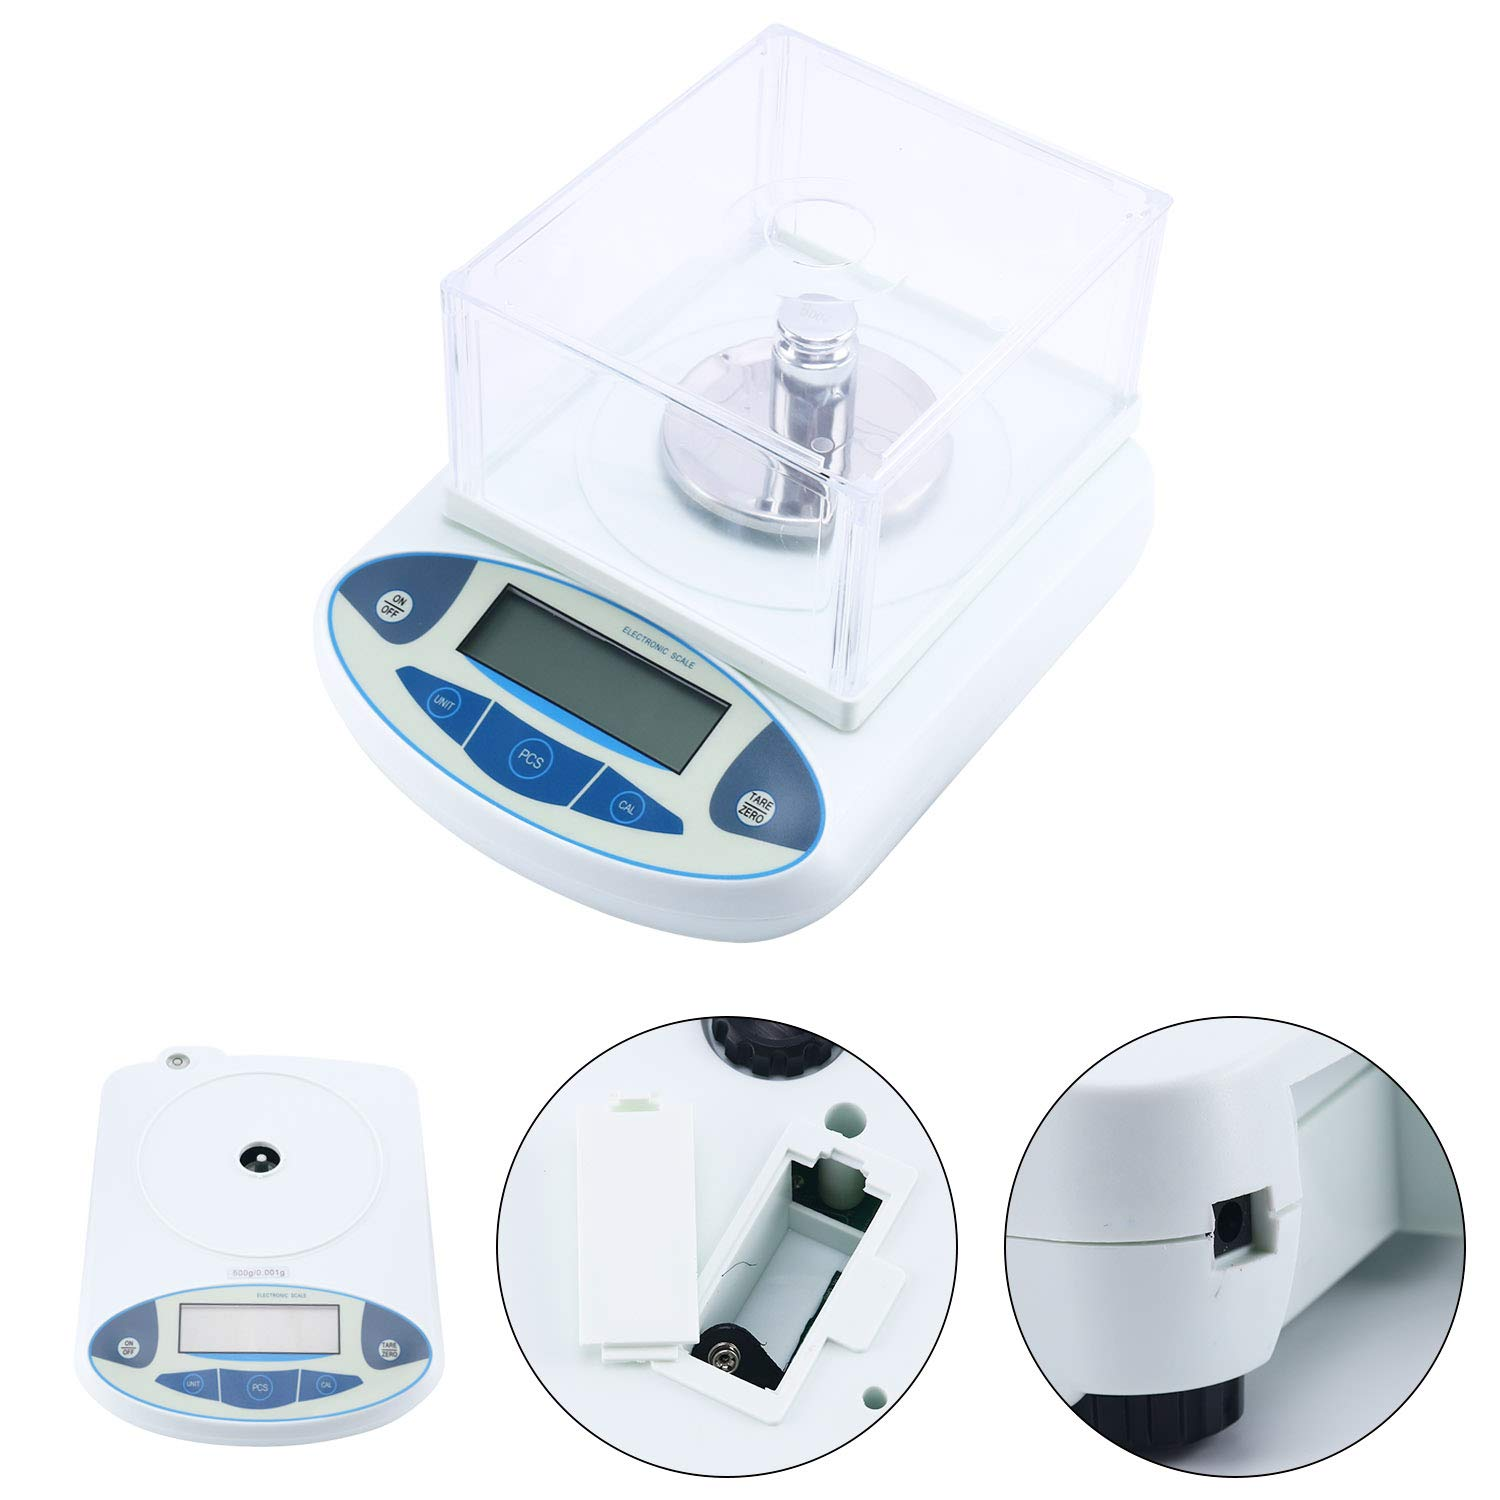 100/200/500 x0.001g 1mg Lab Analytical Balance Digital High Precision Electronic Scale Jewelry Scale (500x0.001g) by YaeCCC